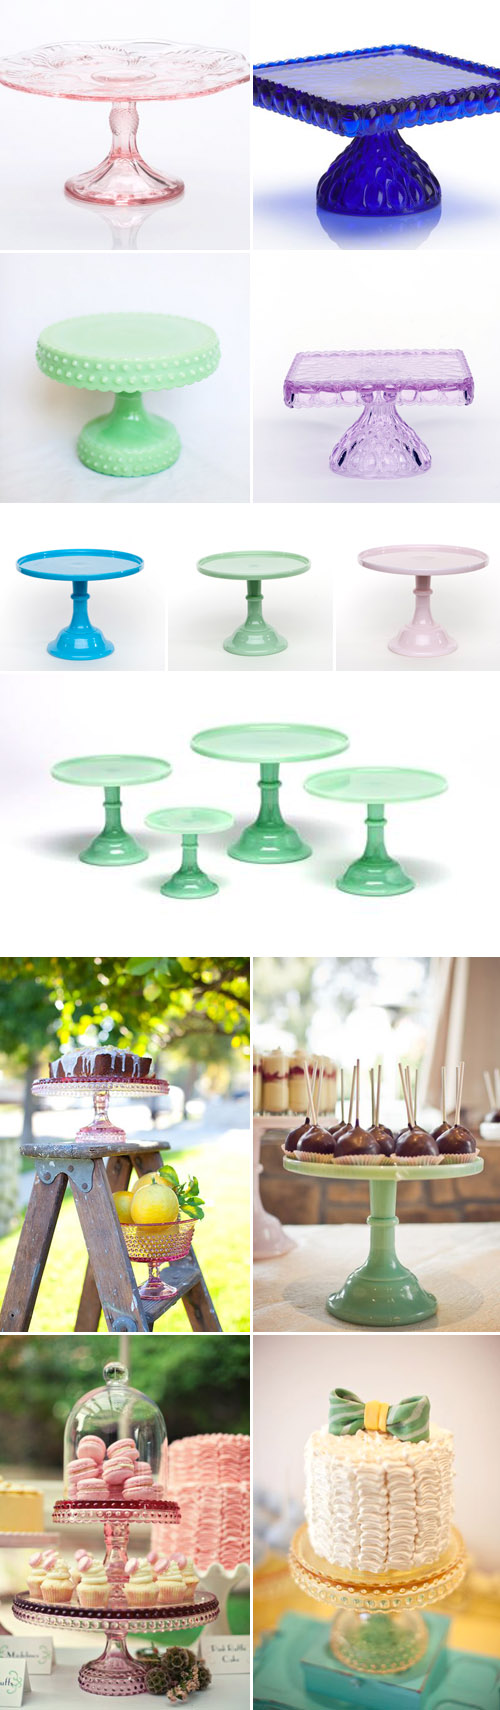 colorful wedding cake stands from Sweet and Saucy Supply Shop, vintage and milk glass cake stands via JunebugWeddings.com